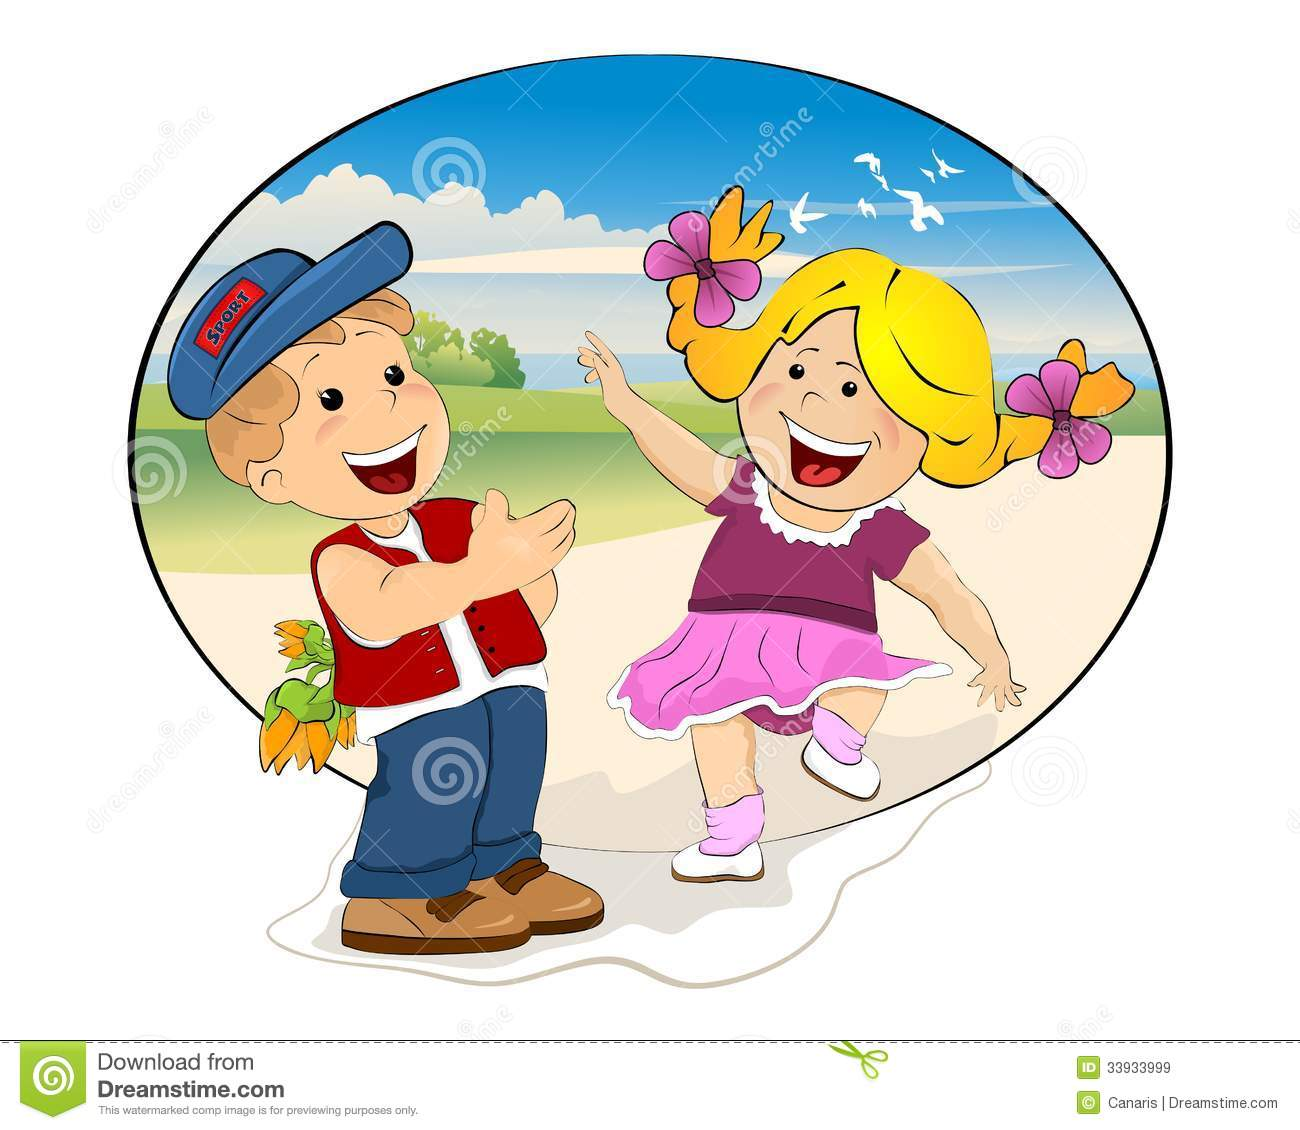 first meeting of boy and girl Must watch arrange marriage first meeting questions answers by boy & girl touching.